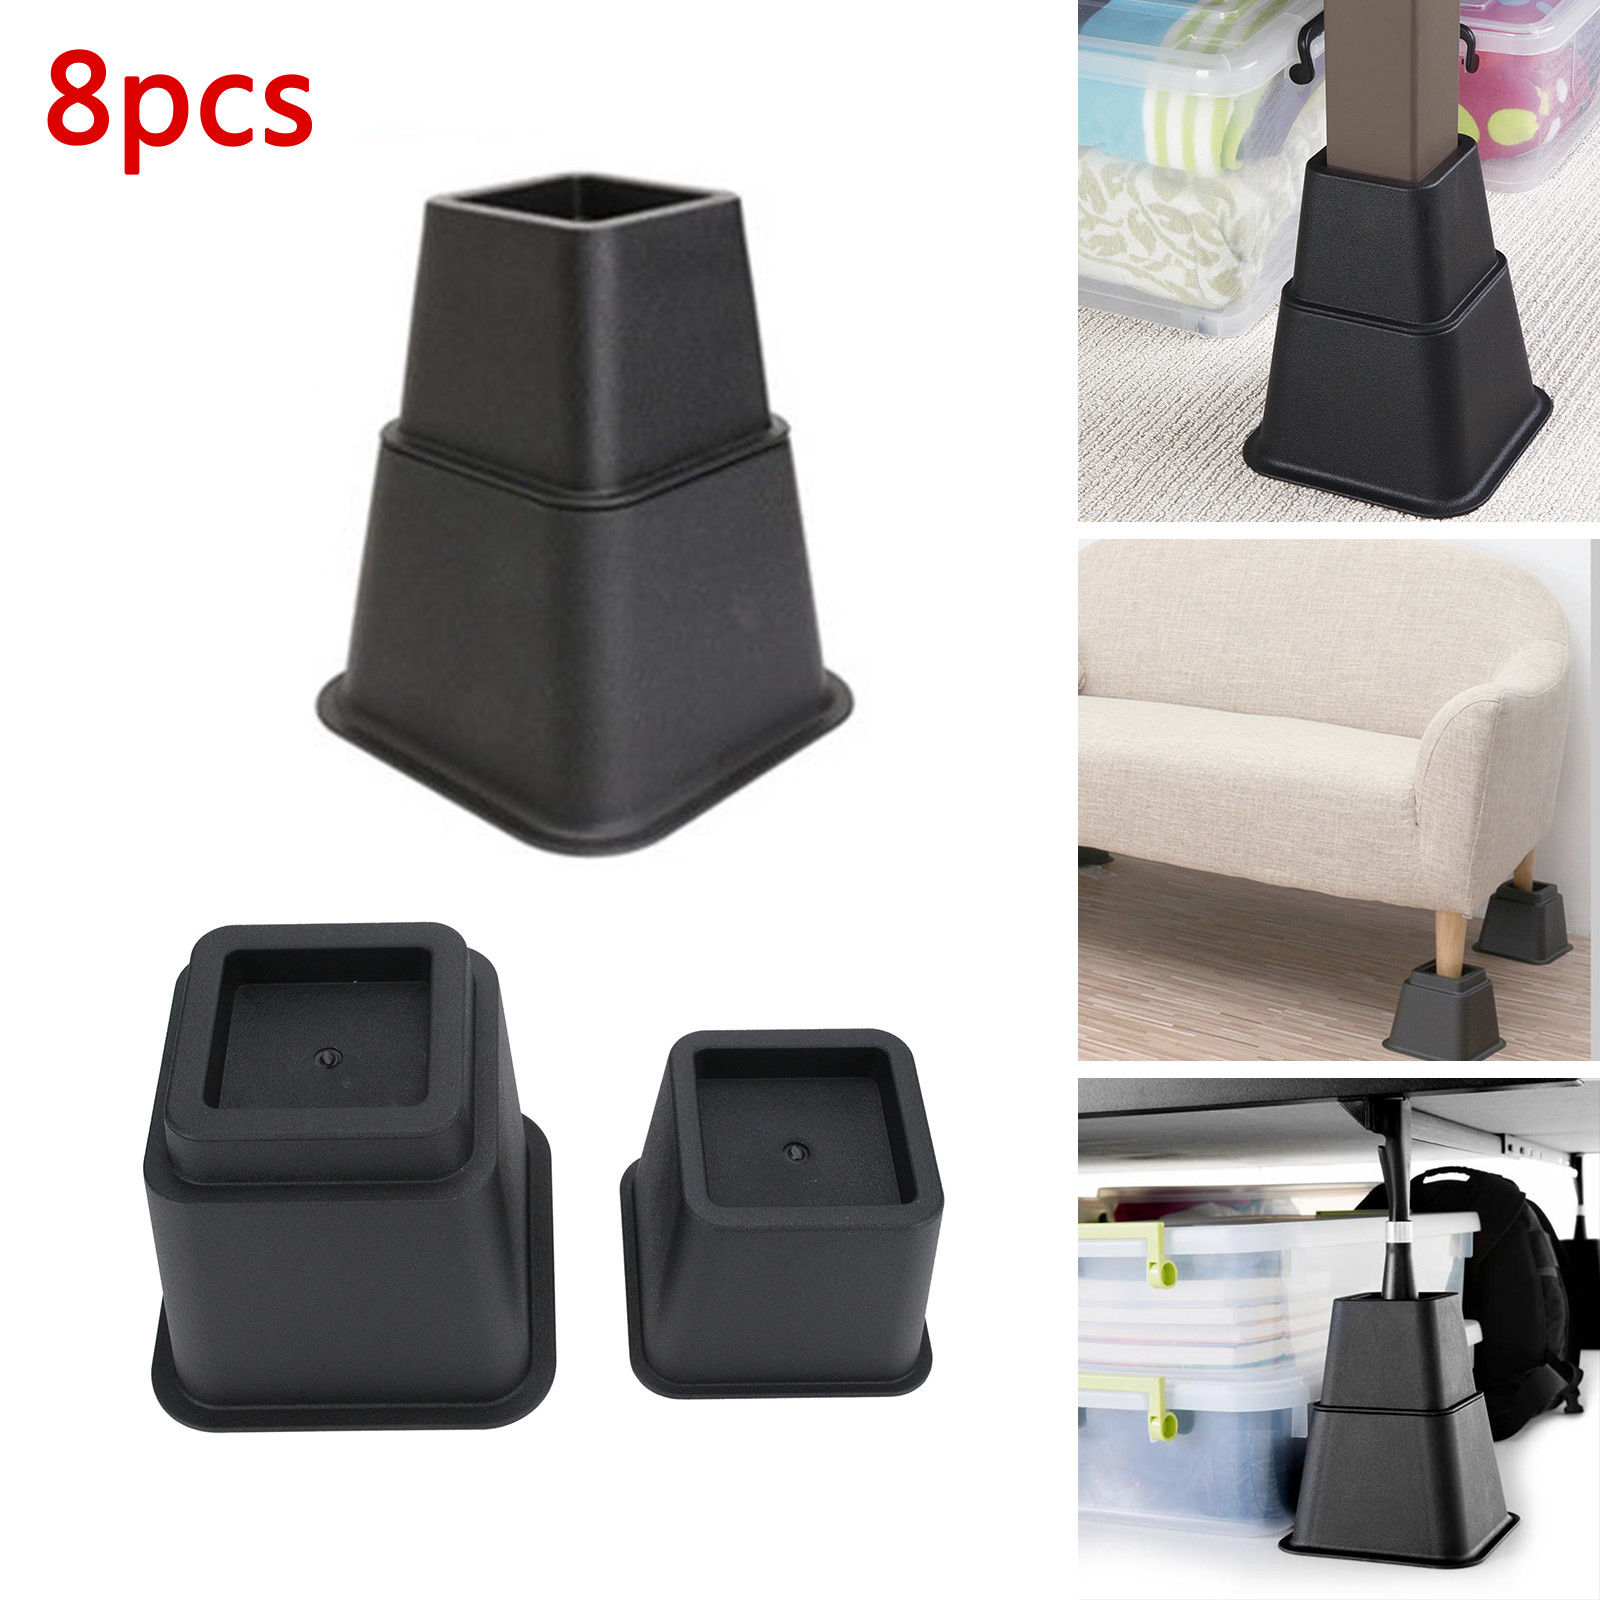 8pcs Height Space Riser Chair Feet Modular Adjustable Plastic Bed Furniture UK  Rubber Feet  Chair Cover Caps8pcs Height Space Riser Chair Feet Modular Adjustable Plastic Bed Furniture UK  Rubber Feet  Chair Cover Caps